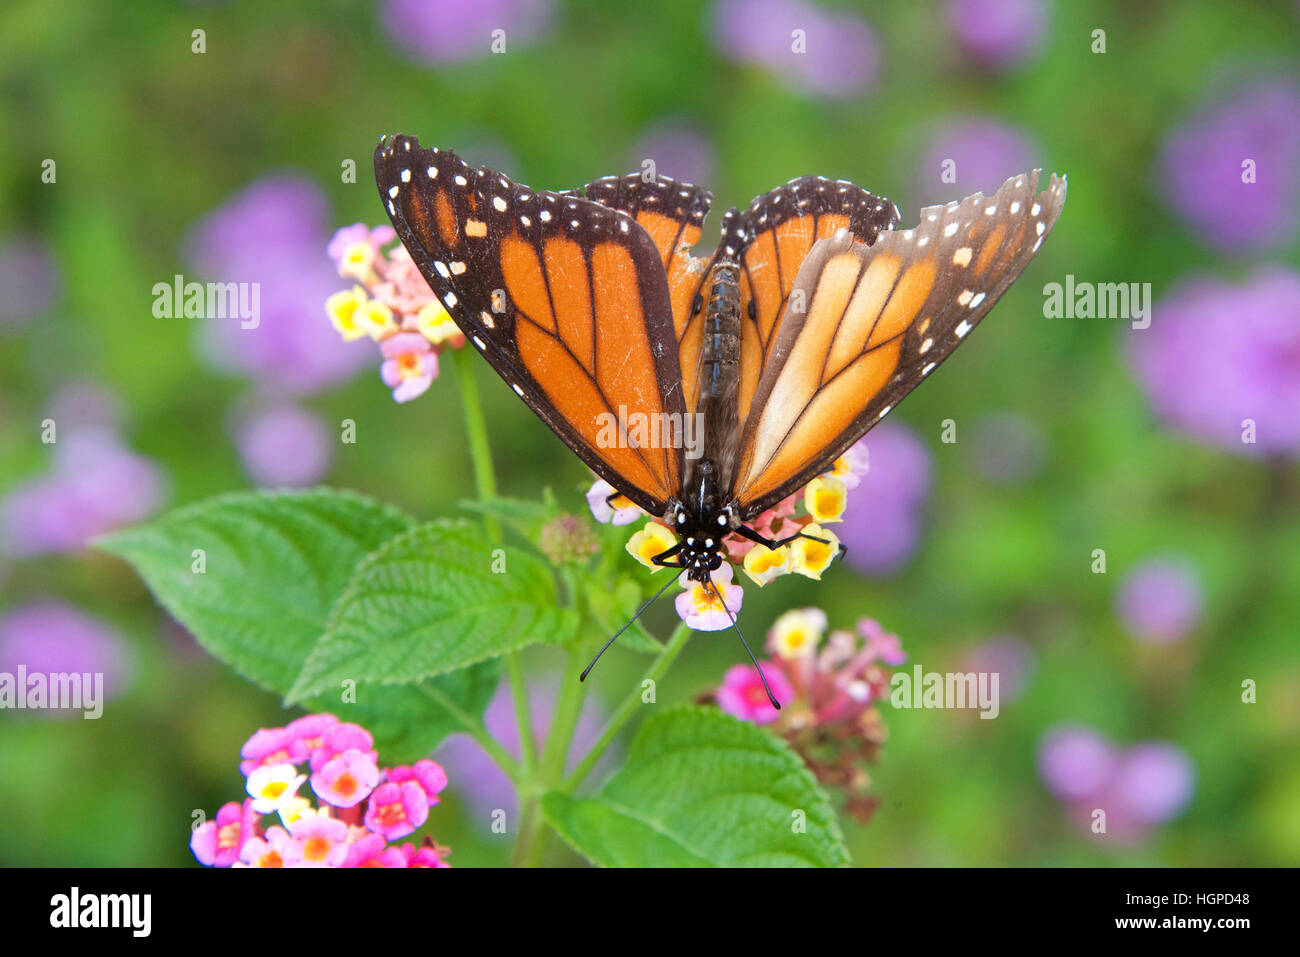 Graceful Insect Stockfotos & Graceful Insect Bilder - Seite 8 - Alamy